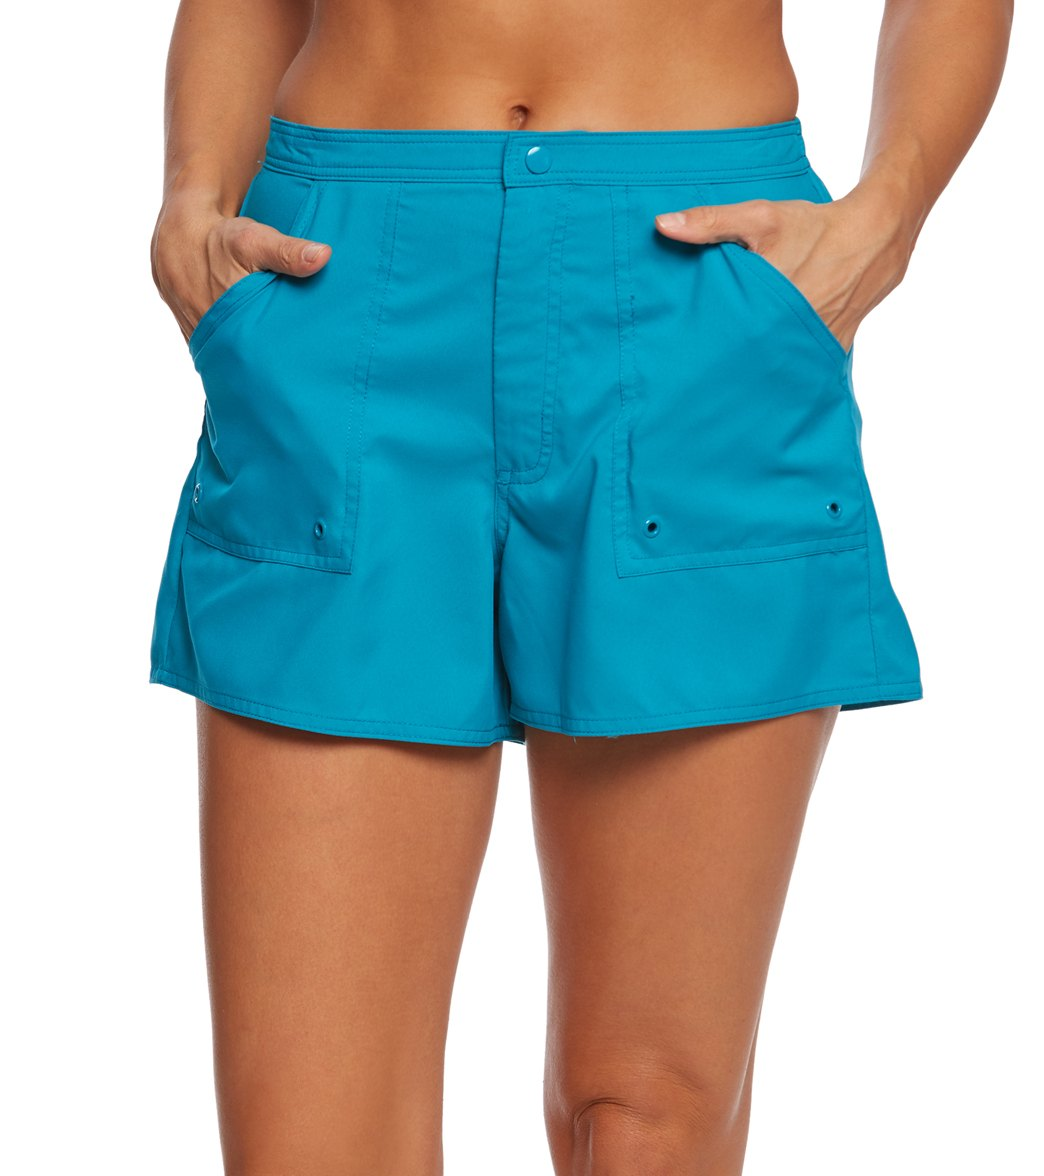 761b5eda466a0 Maxine Women s Solid Woven Boardshort at SwimOutlet.com